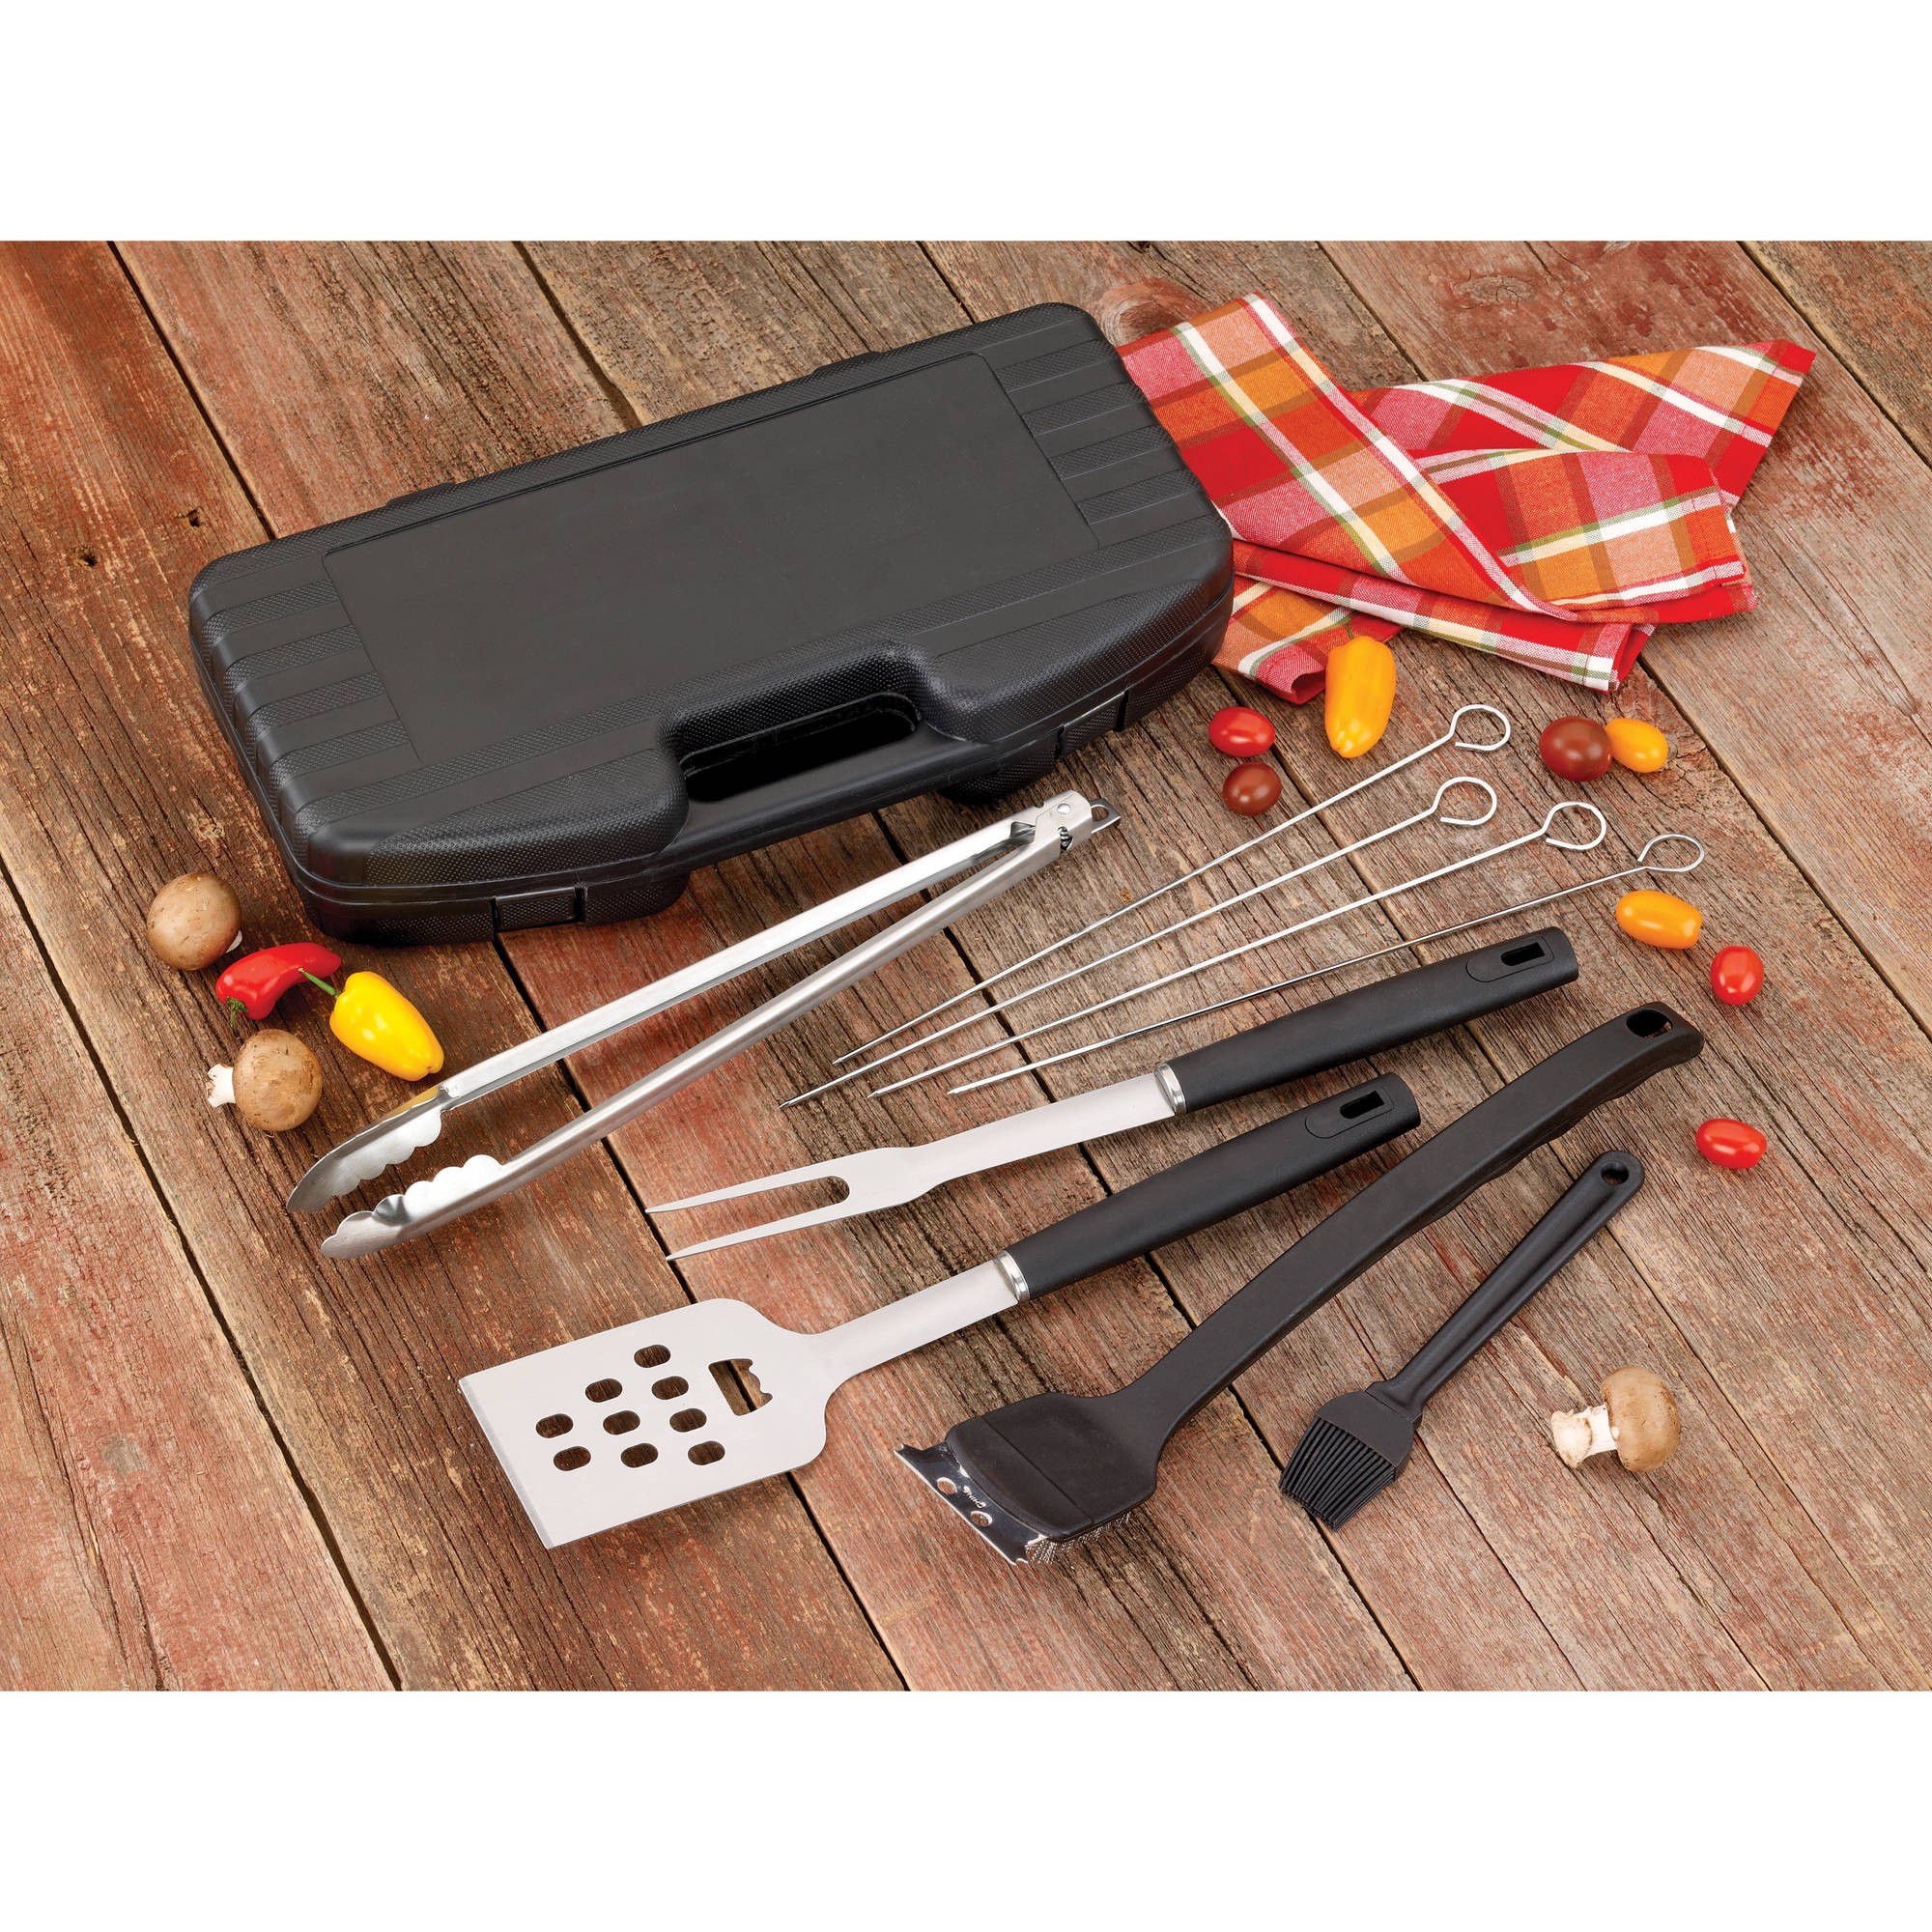 Backyard Grill 10-Piece Tool Set